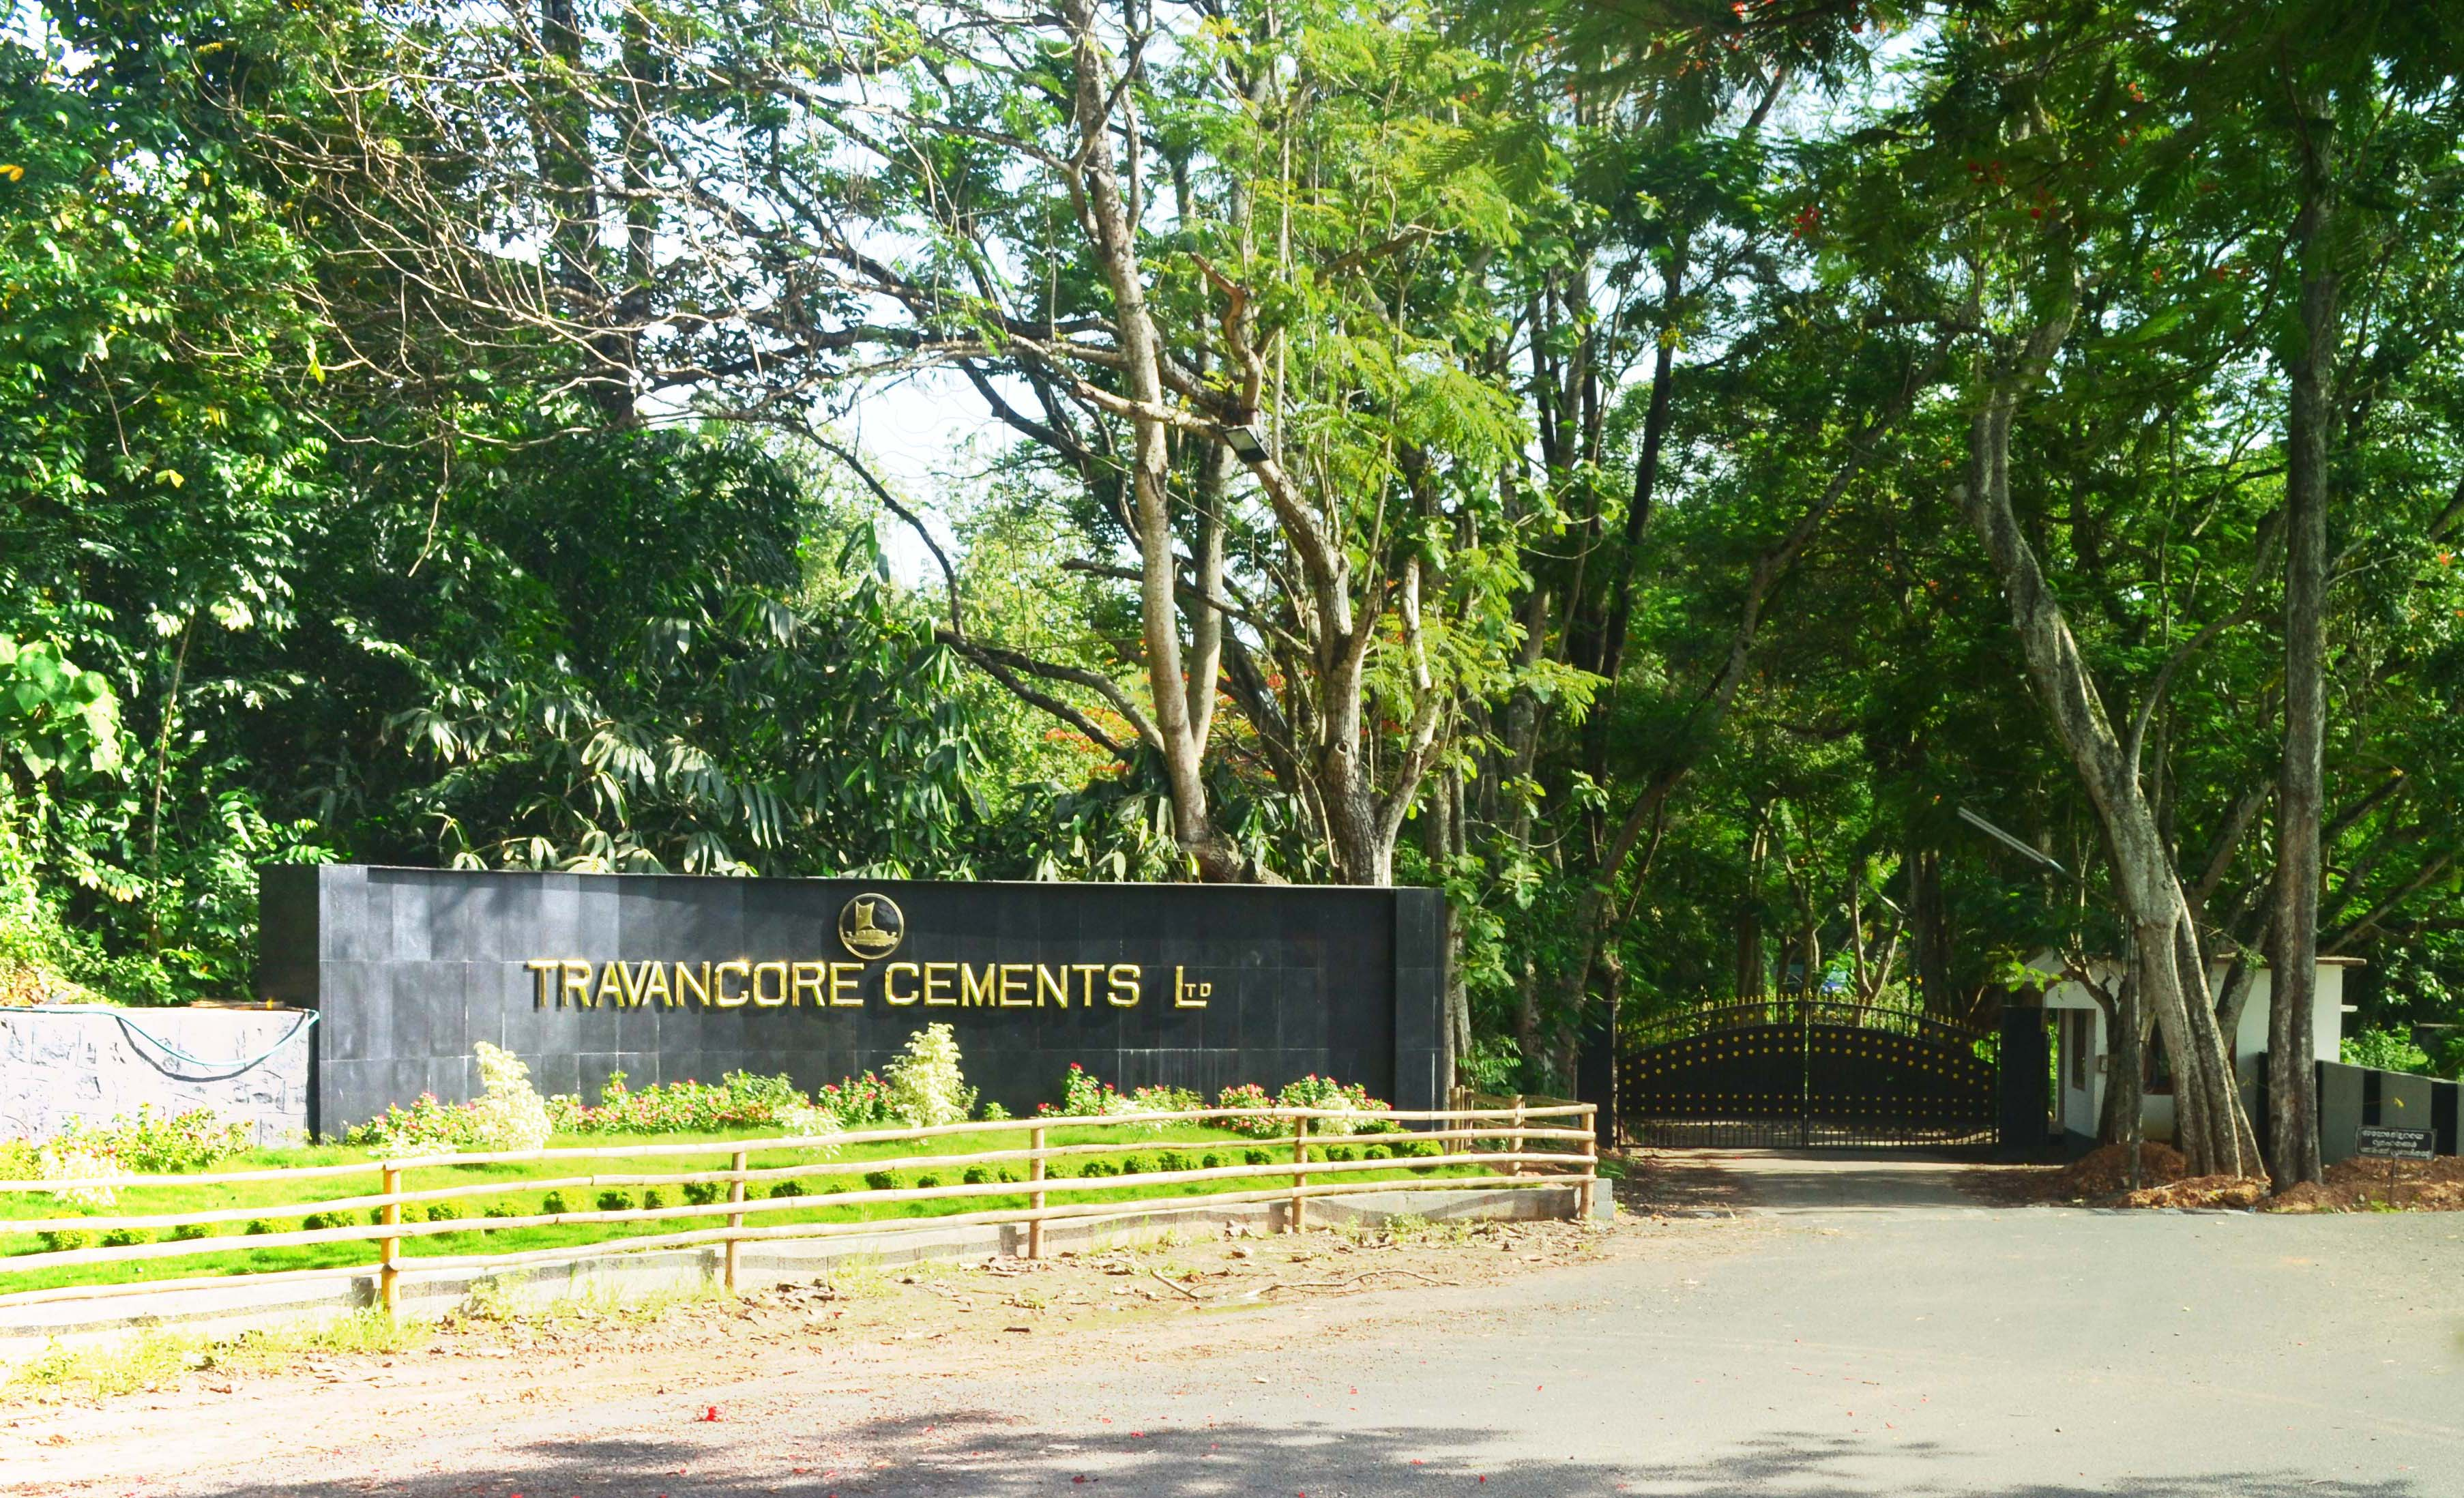 Travancore Cements LTD